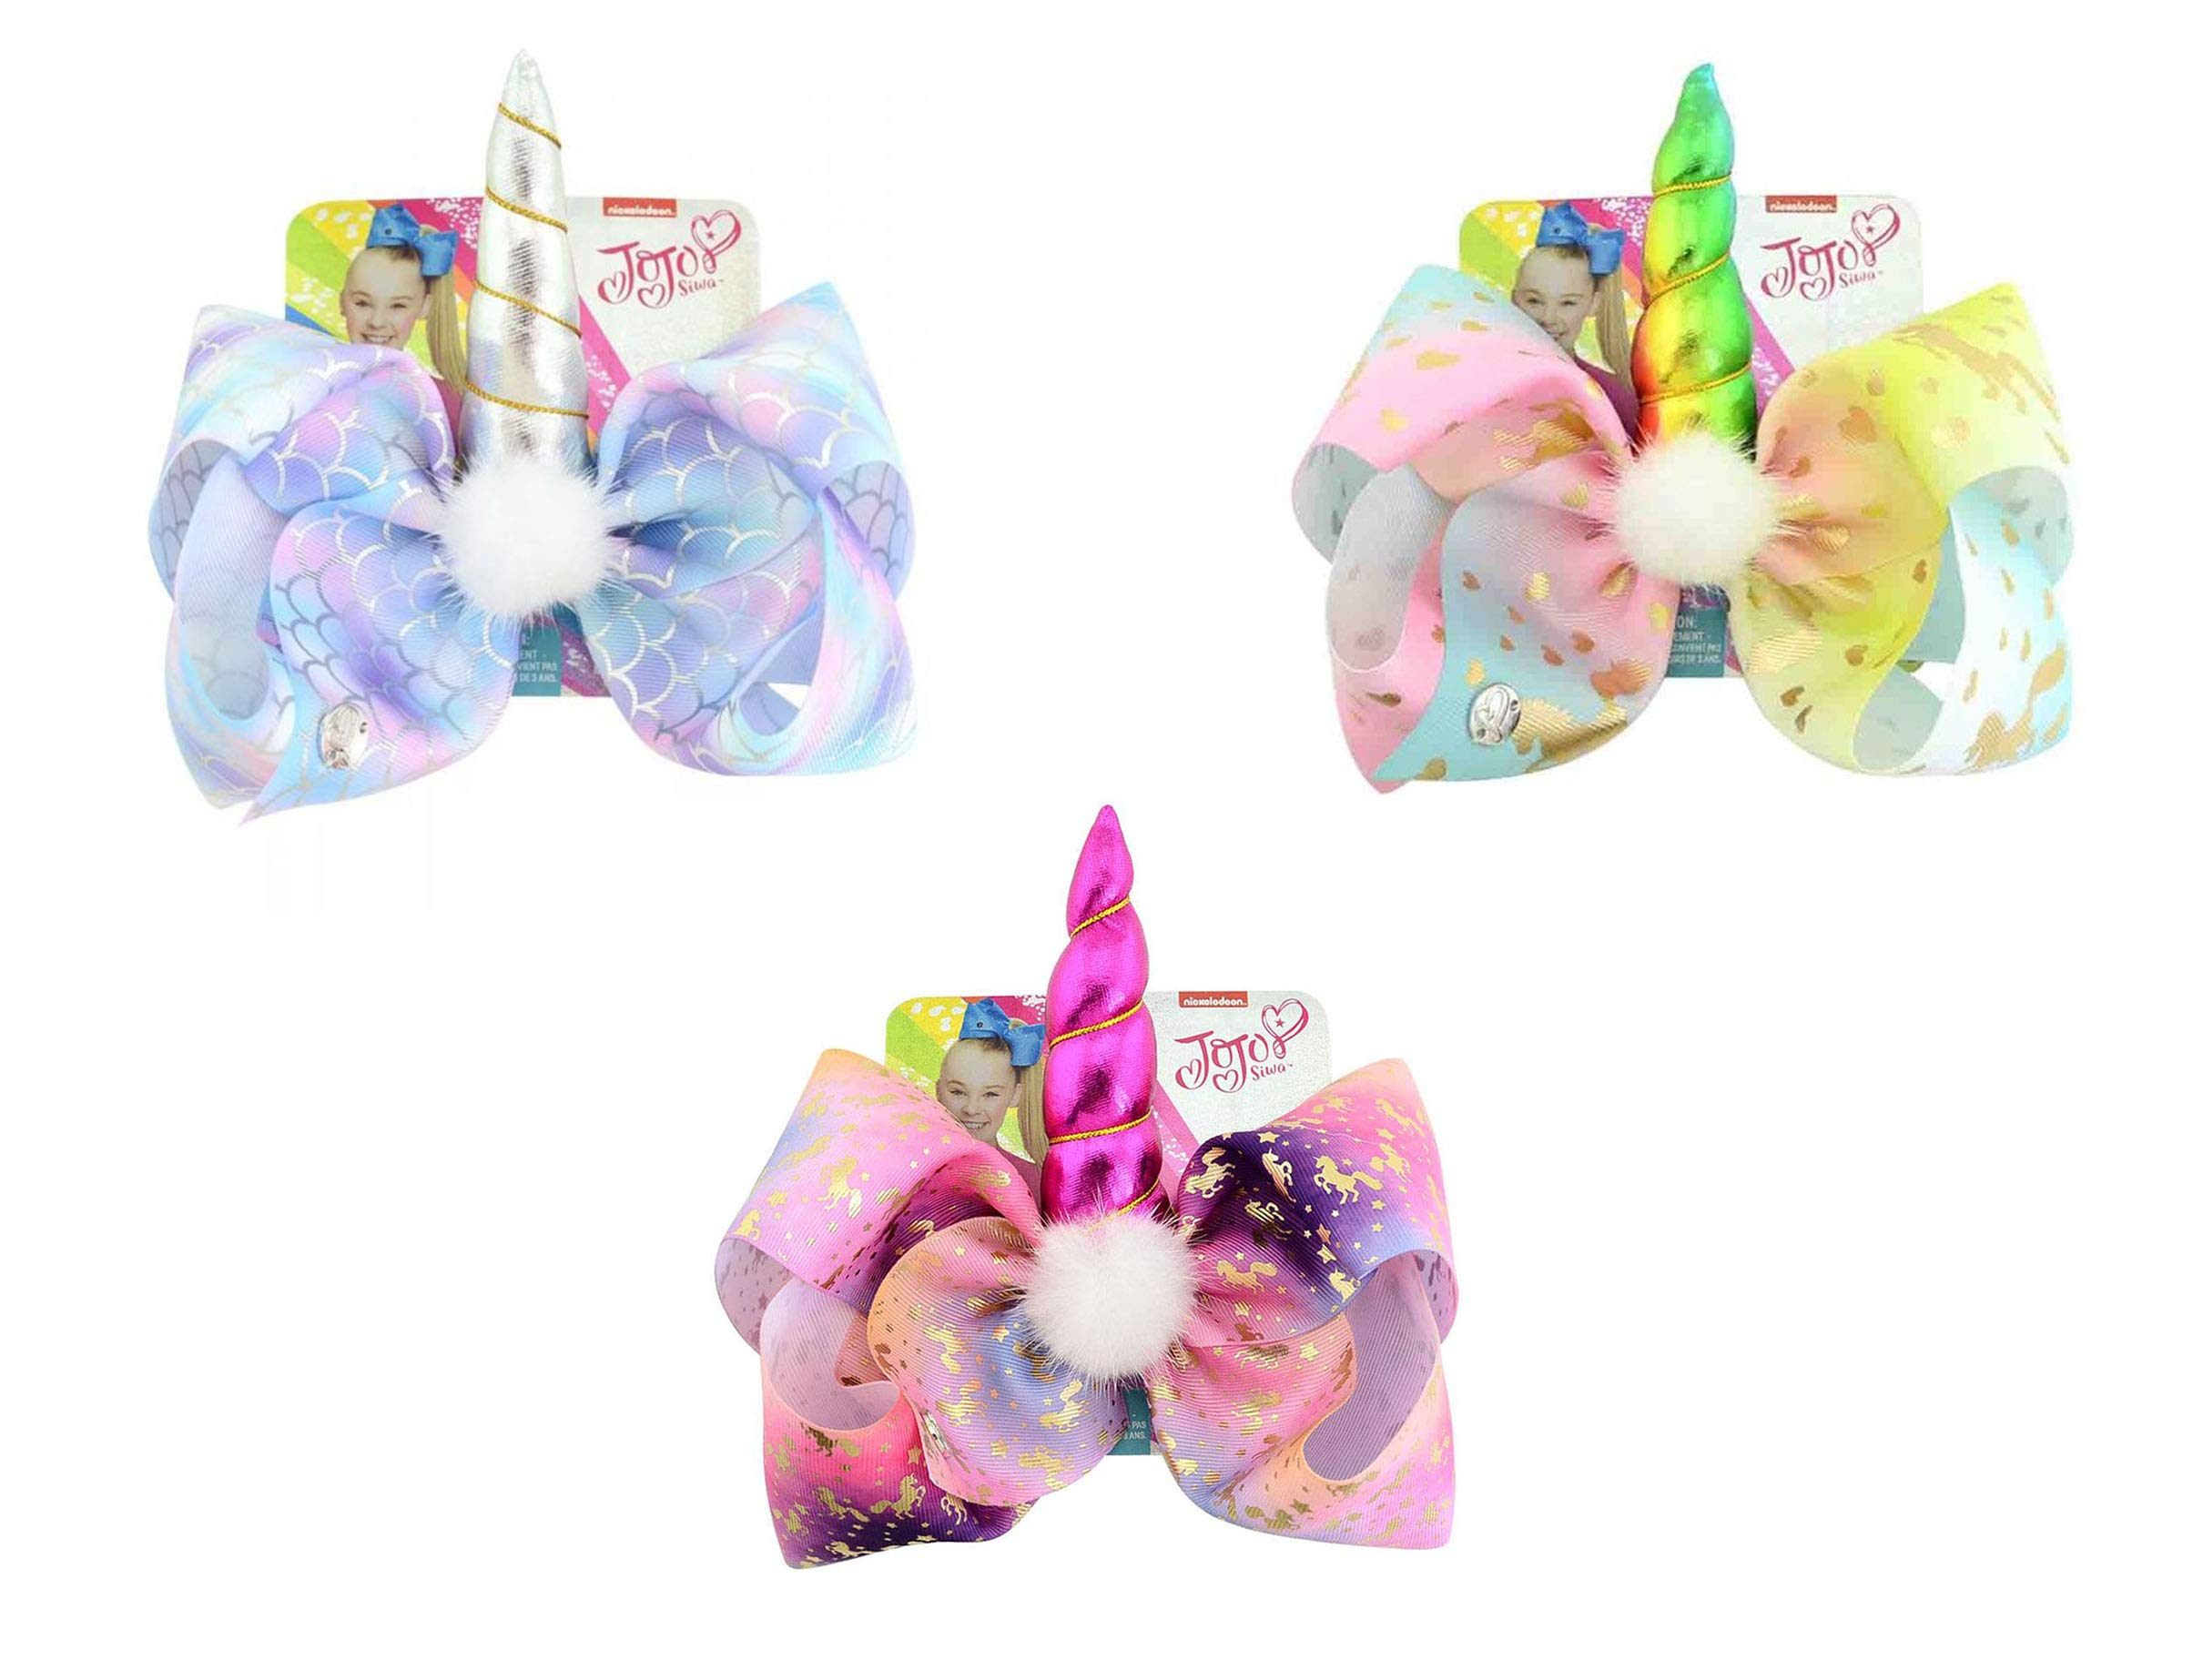 JoJo Siwa Bow Unicorn Hair Clip Signature Collection Color Transcendent Bows Set Of 3✨✨✨ Comes With 3 Different Styles JoJo Siwa Birthday Party Set A Must Have For All JoJo Siwa Fans ✨✨ by goldenxchange